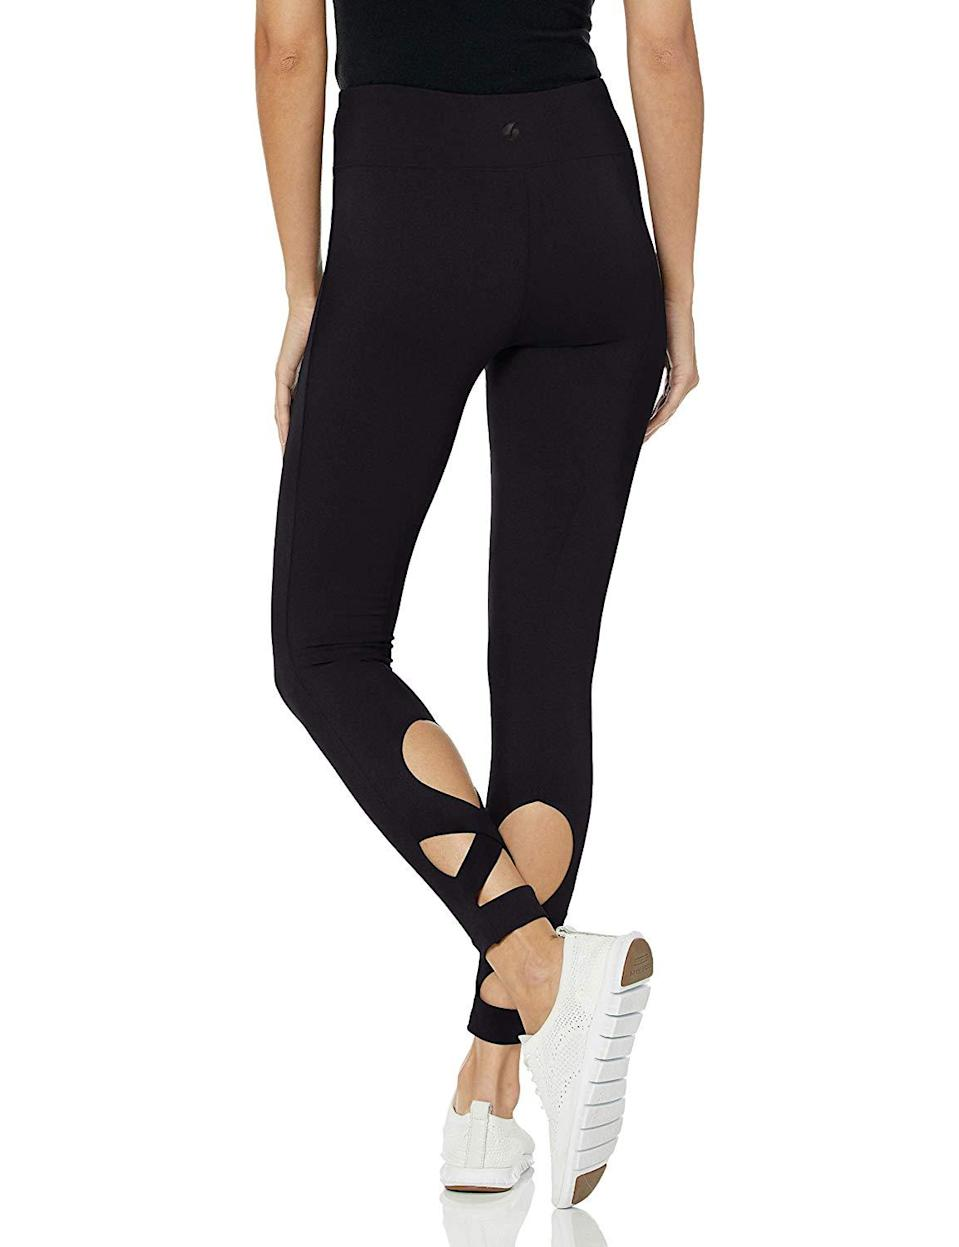 "<h3><a href=""https://www.amazon.com/Soffe-Womens-Legging-black-Medium/dp/B07NSLWSNL"" rel=""nofollow noopener"" target=""_blank"" data-ylk=""slk:Wrap Legging"" class=""link rapid-noclick-resp"">Wrap Legging</a> </h3><br><br>no reviews available<br><br><strong>Soffe</strong> Wrap Legging, $, available at <a href=""https://www.amazon.com/Soffe-Womens-Legging-black-Medium/dp/B07NSLWSNL"" rel=""nofollow noopener"" target=""_blank"" data-ylk=""slk:Amazon"" class=""link rapid-noclick-resp"">Amazon</a>"